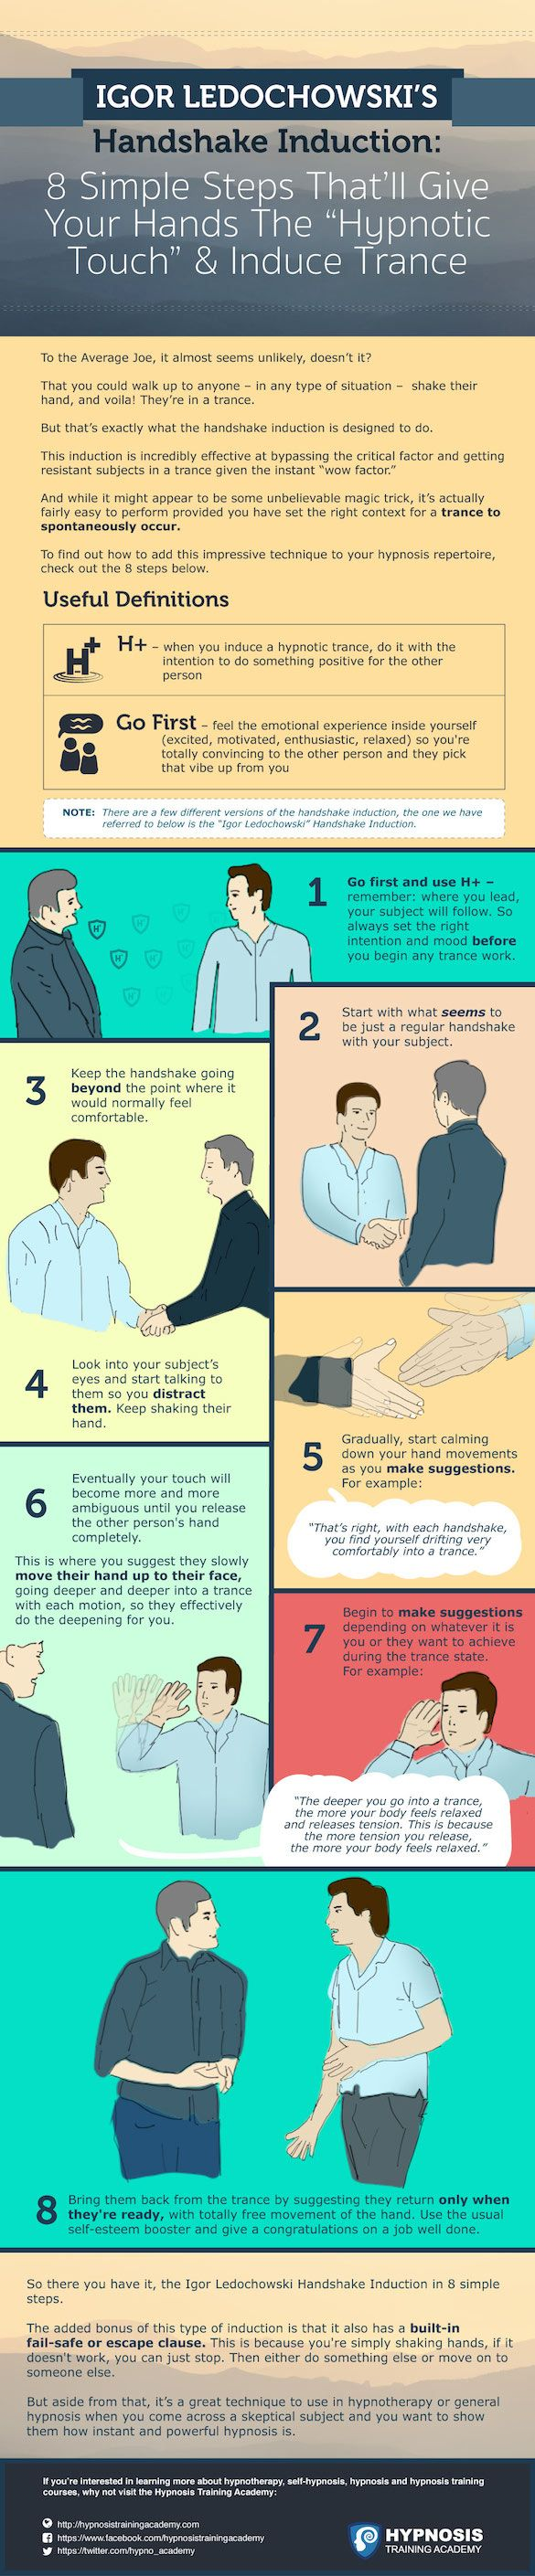 """Igor Ledochowski's Handshake Induction: 8 Simple Steps That'll Give Your Hands The """"Hypnotic Touch"""" & Induce Trance"""